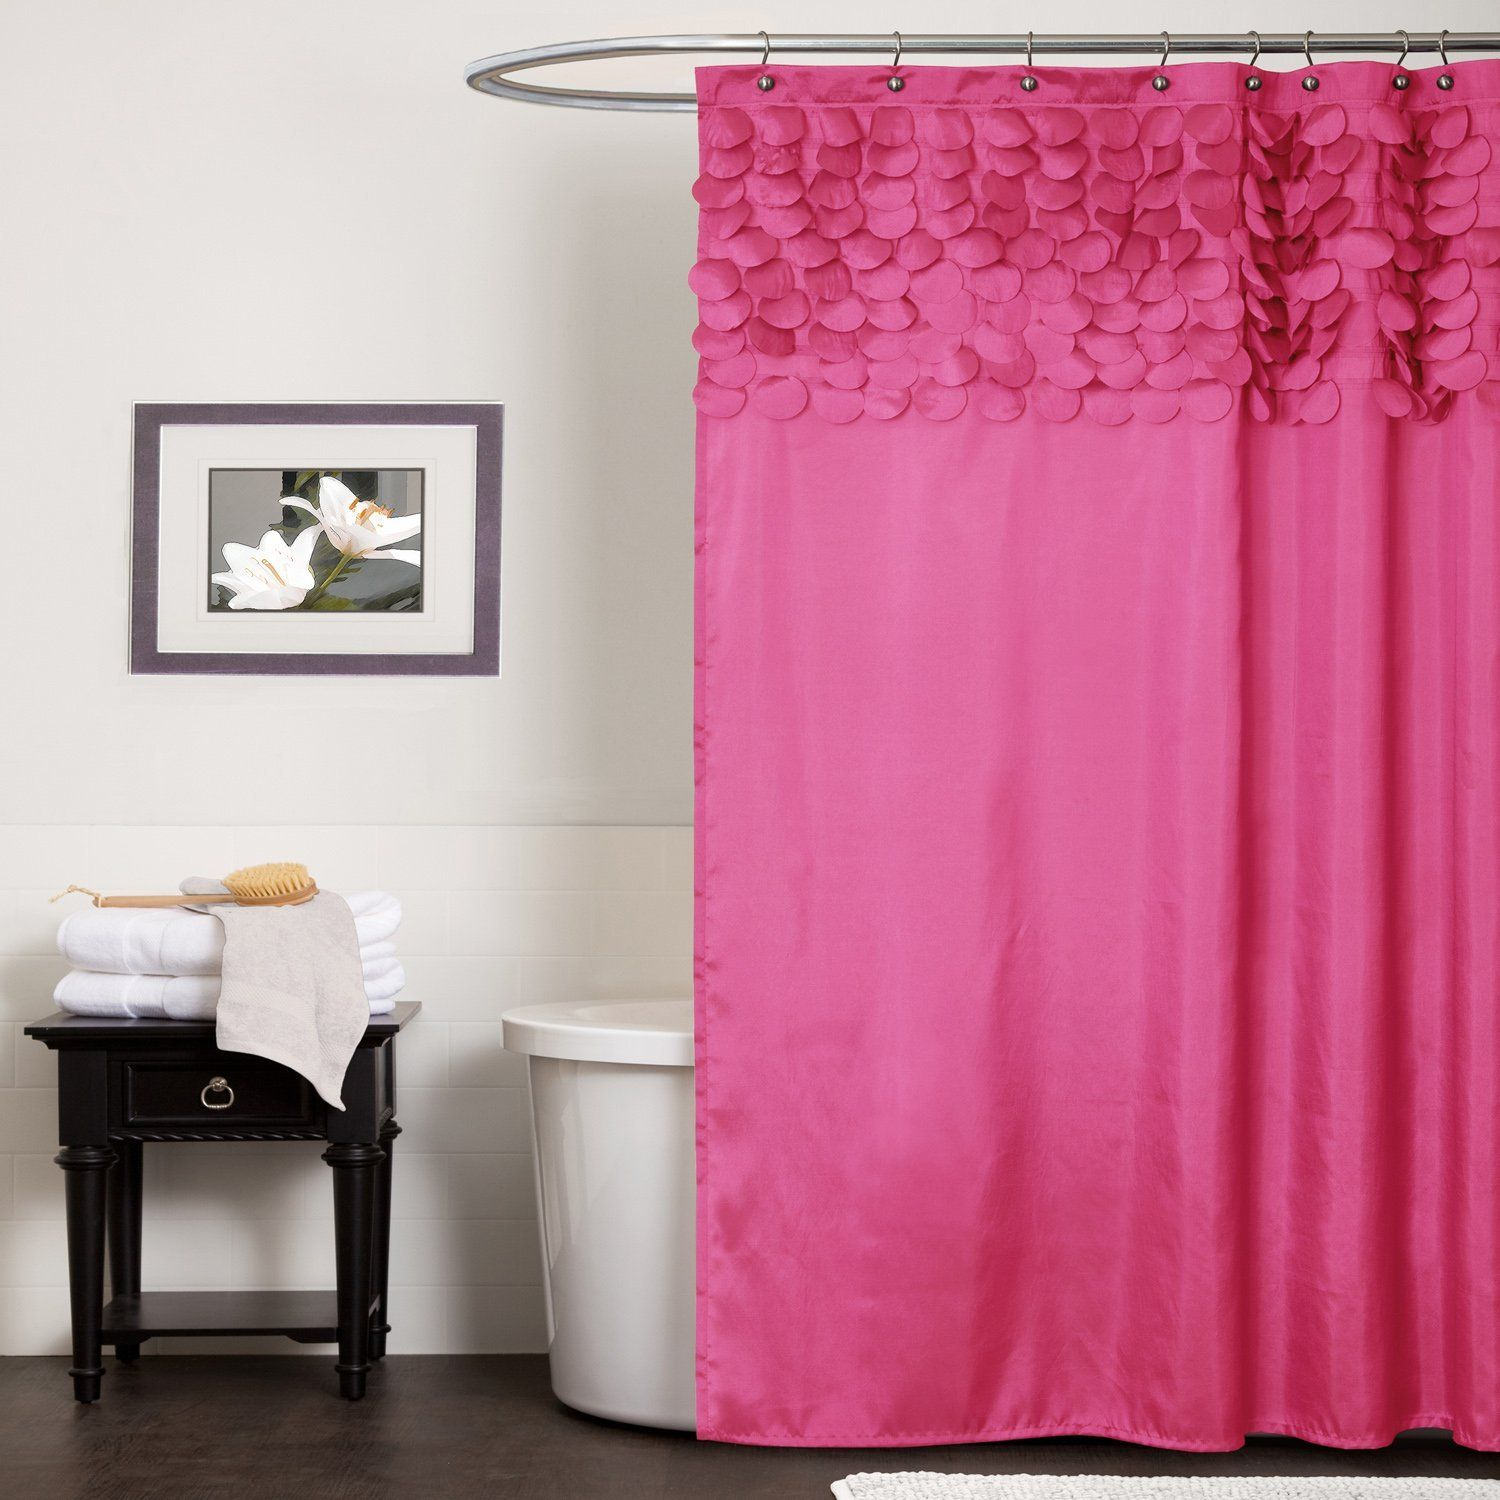 Hot pink shower curtain - Hot Pink Shower Curtain 1000 Images About Curtains From On Pinterest Pink Orange Fuschia Ombre